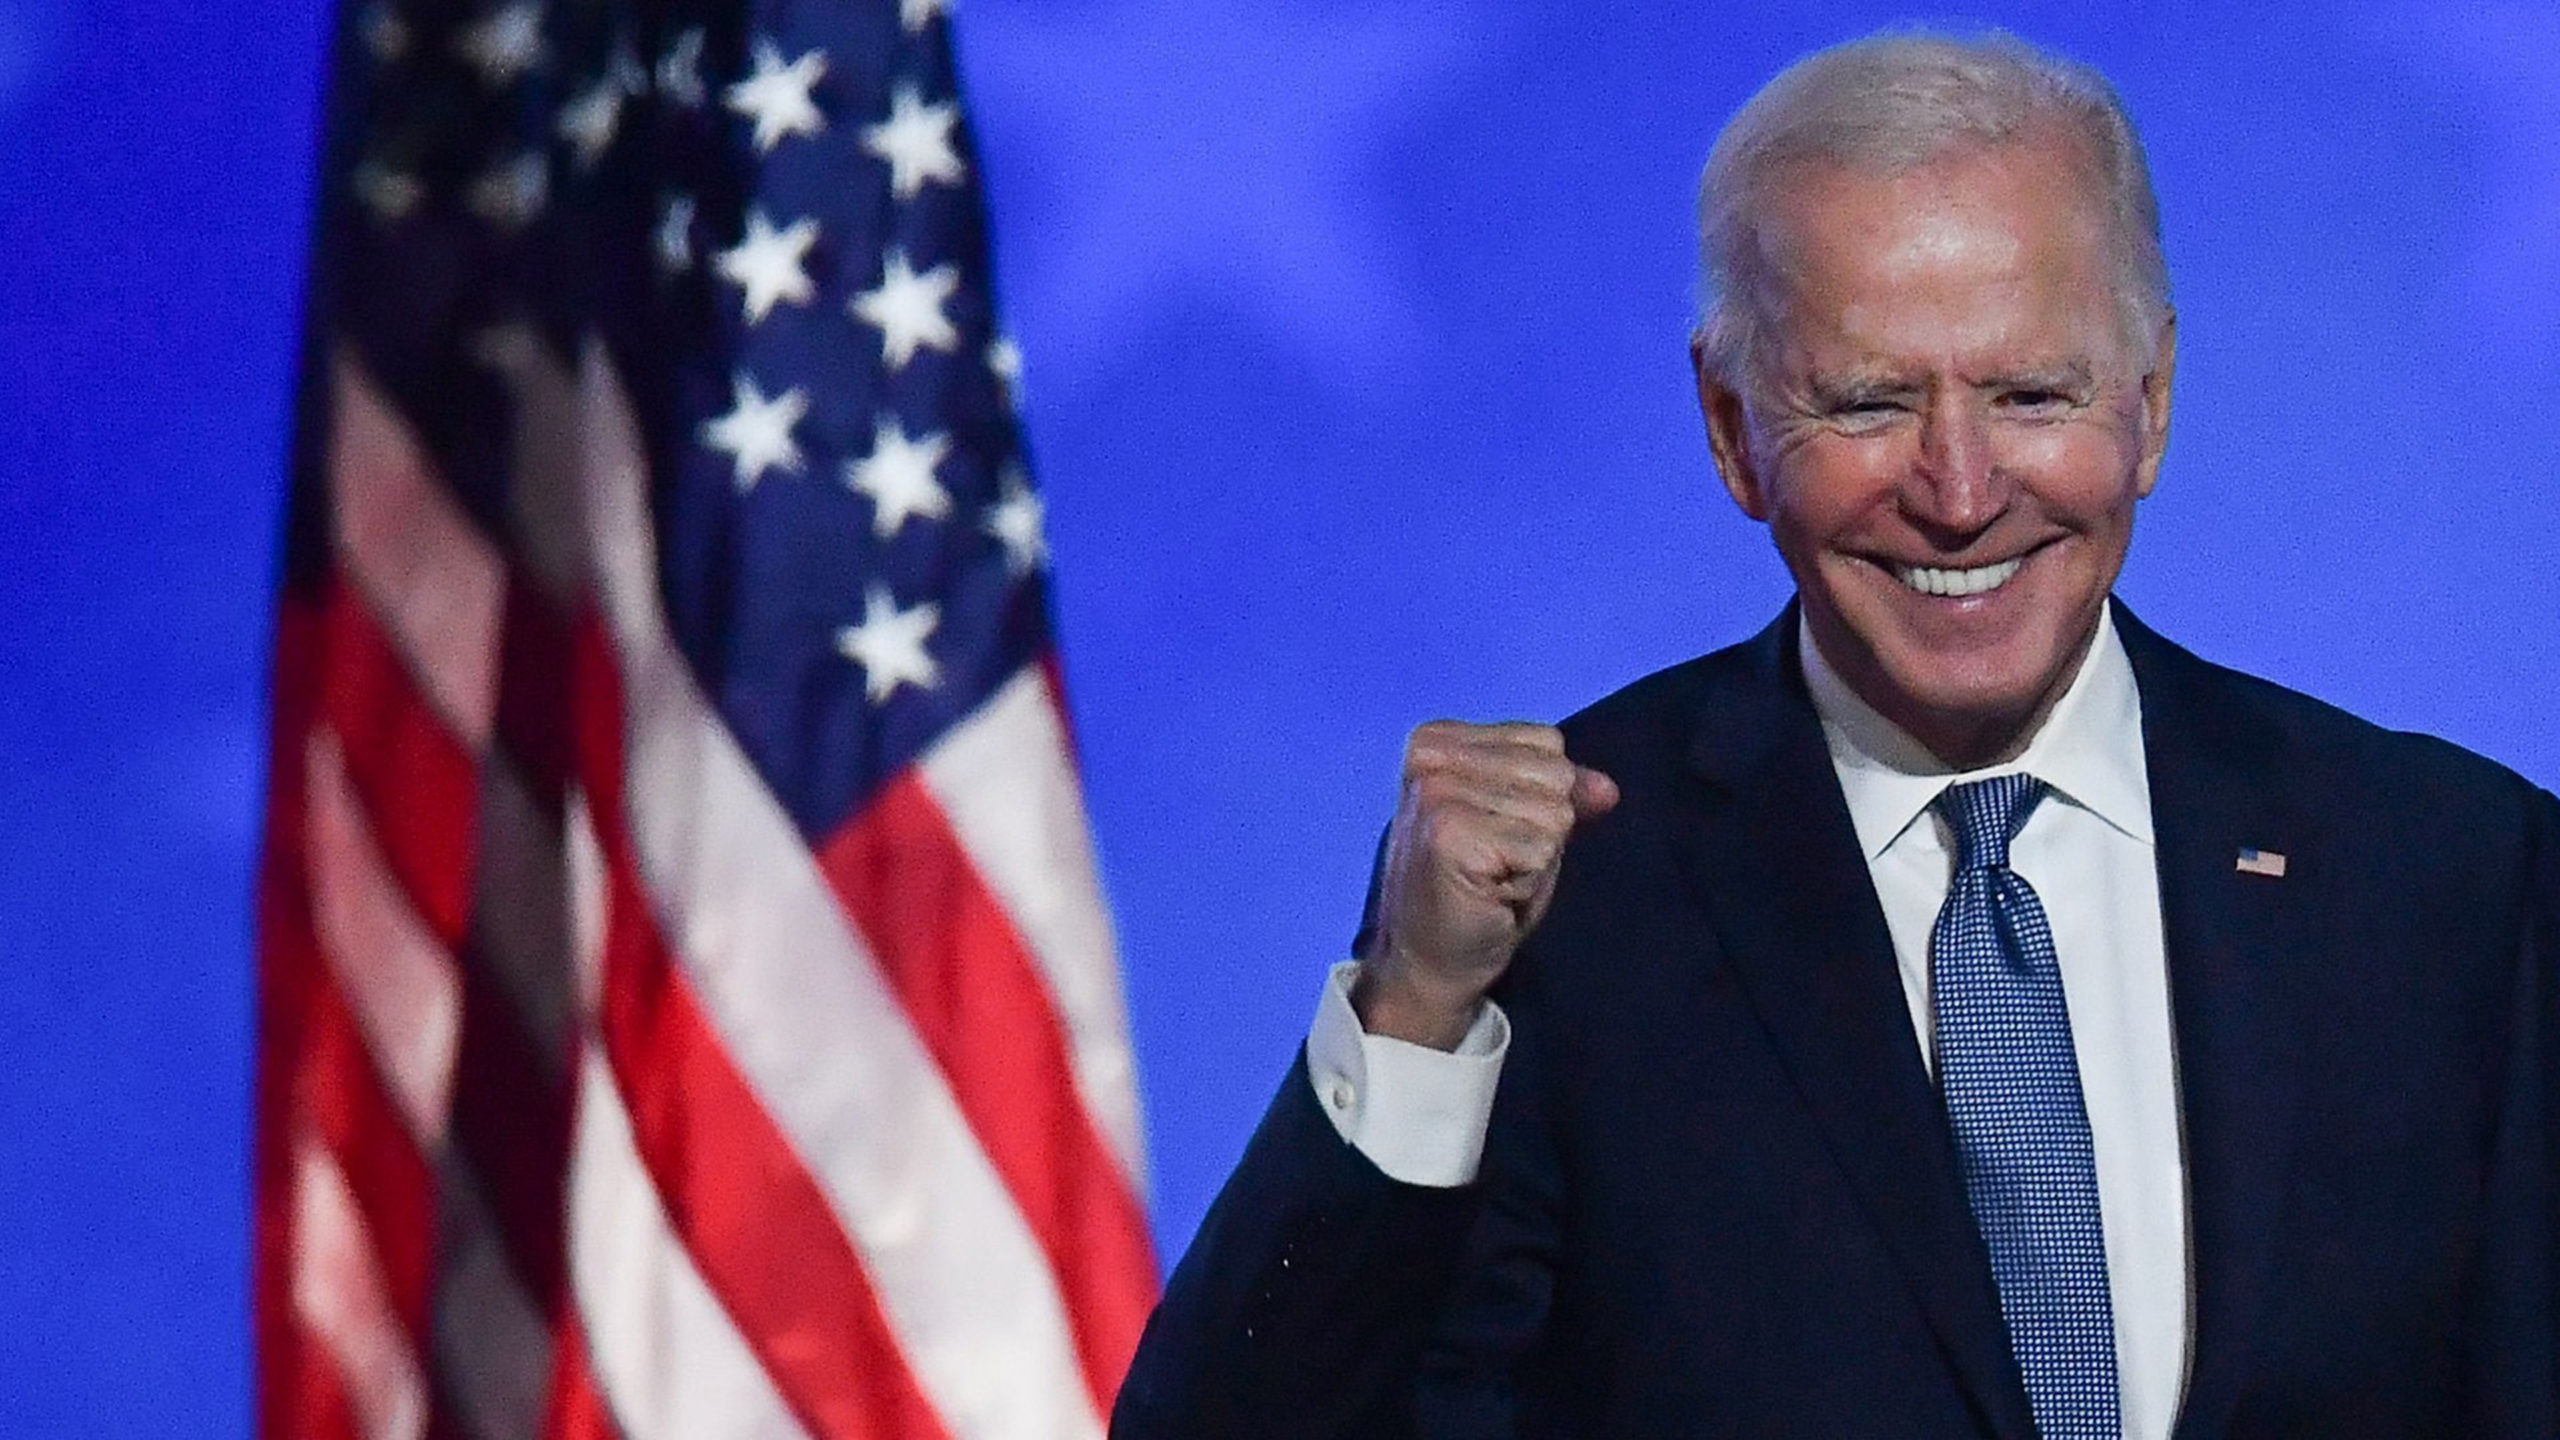 Biden Transition Team Signals Commitment to Climate Action